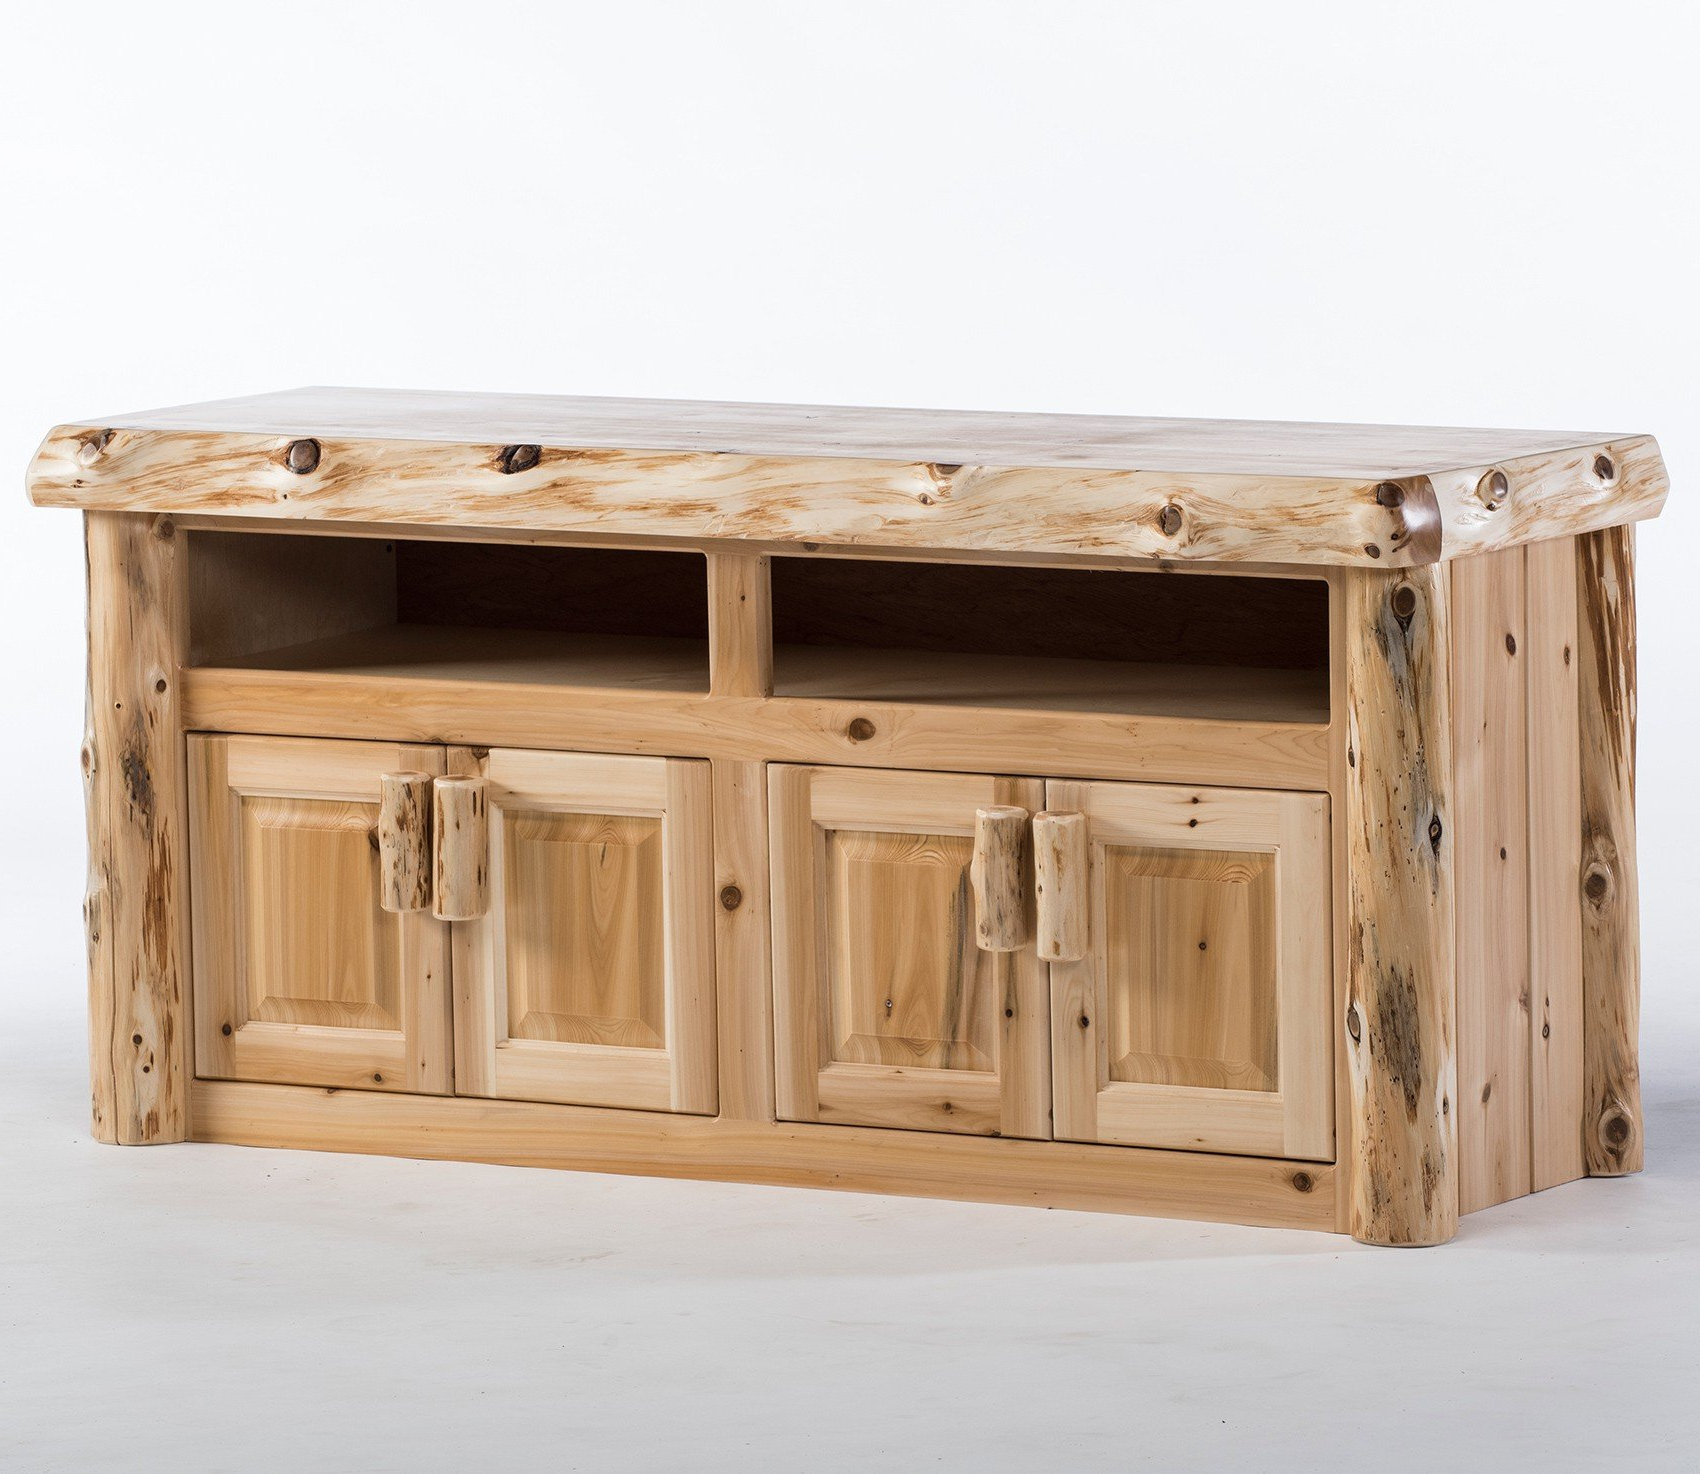 Preferred Rustic Looking Tv Stands Throughout Reclaimed Wood Tv Stands & Rustic Tv Stands: Log Tv Stand & Rustic (View 12 of 20)